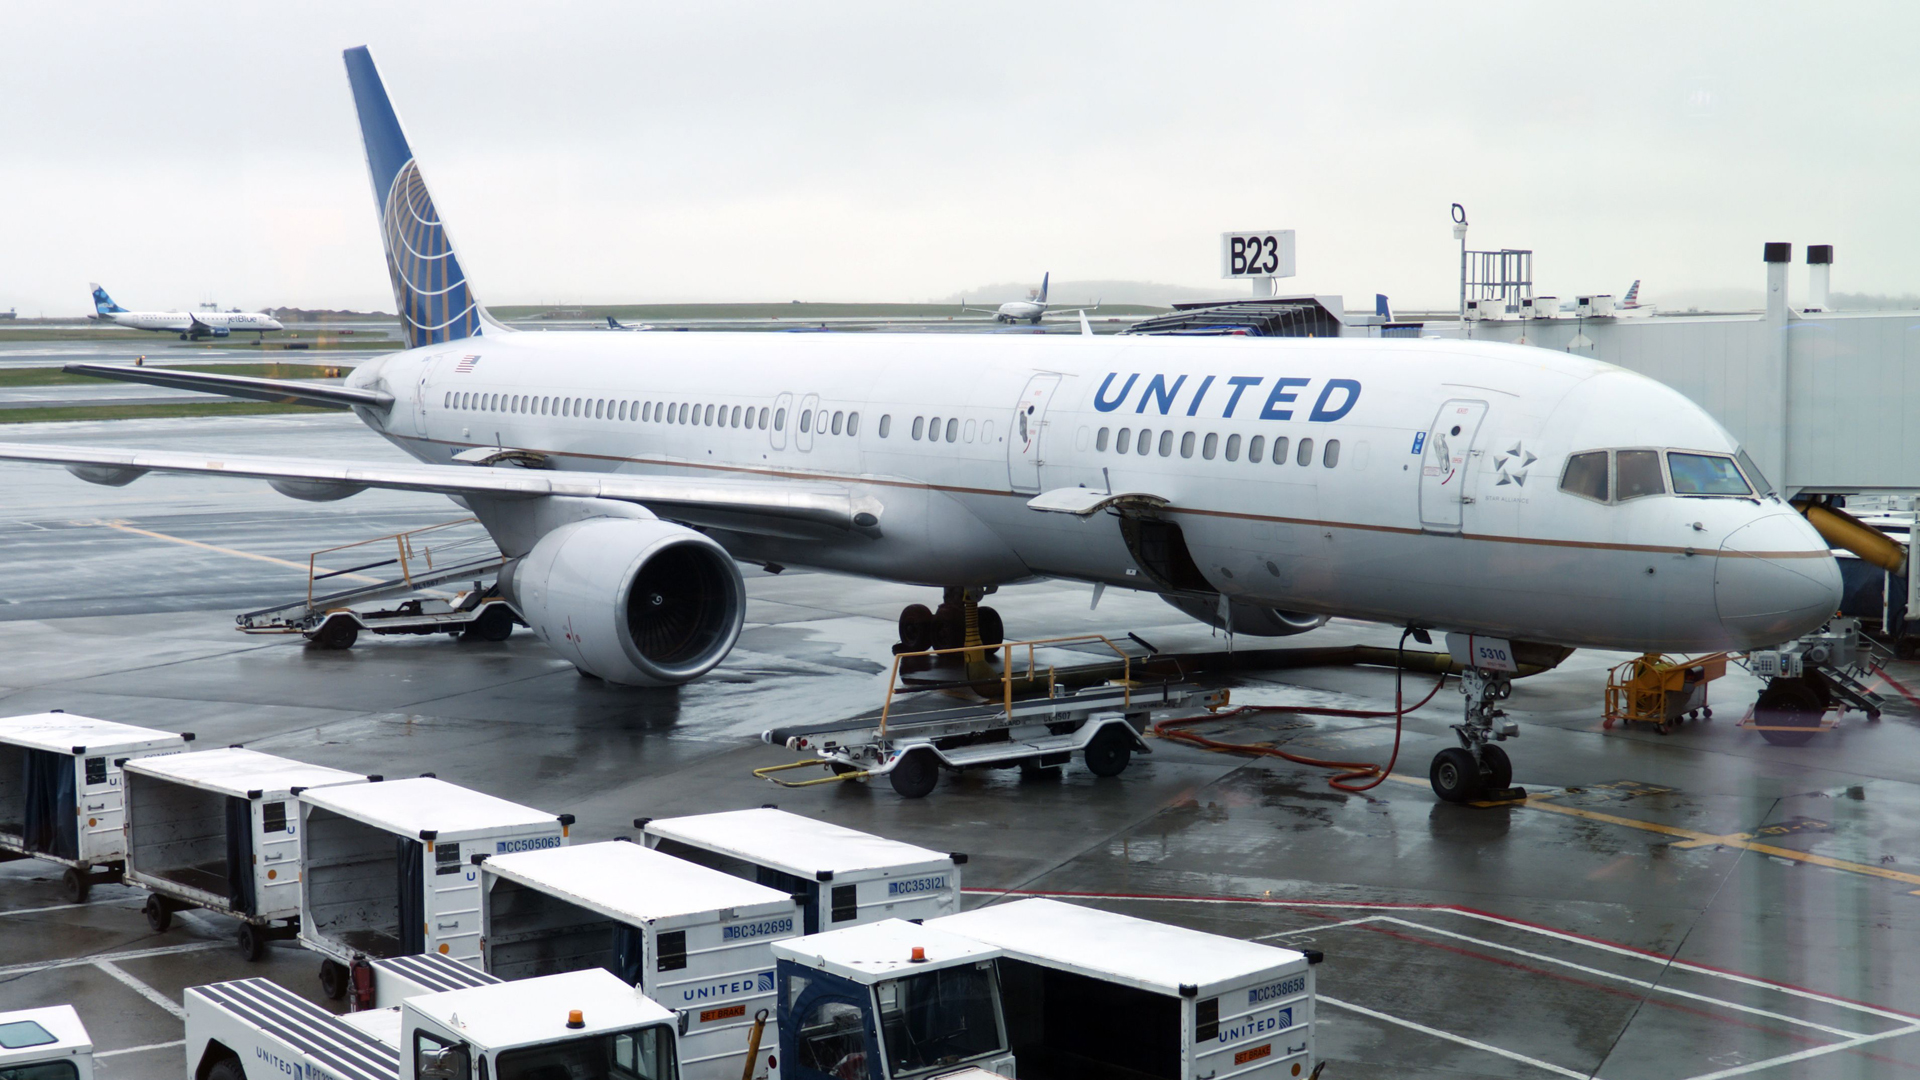 An United Airlines plane is seen parked at the gate on April 23, 2019, at Boston Logan International Airport. (Credit: DANIEL SLIM/AFP/Getty Images)